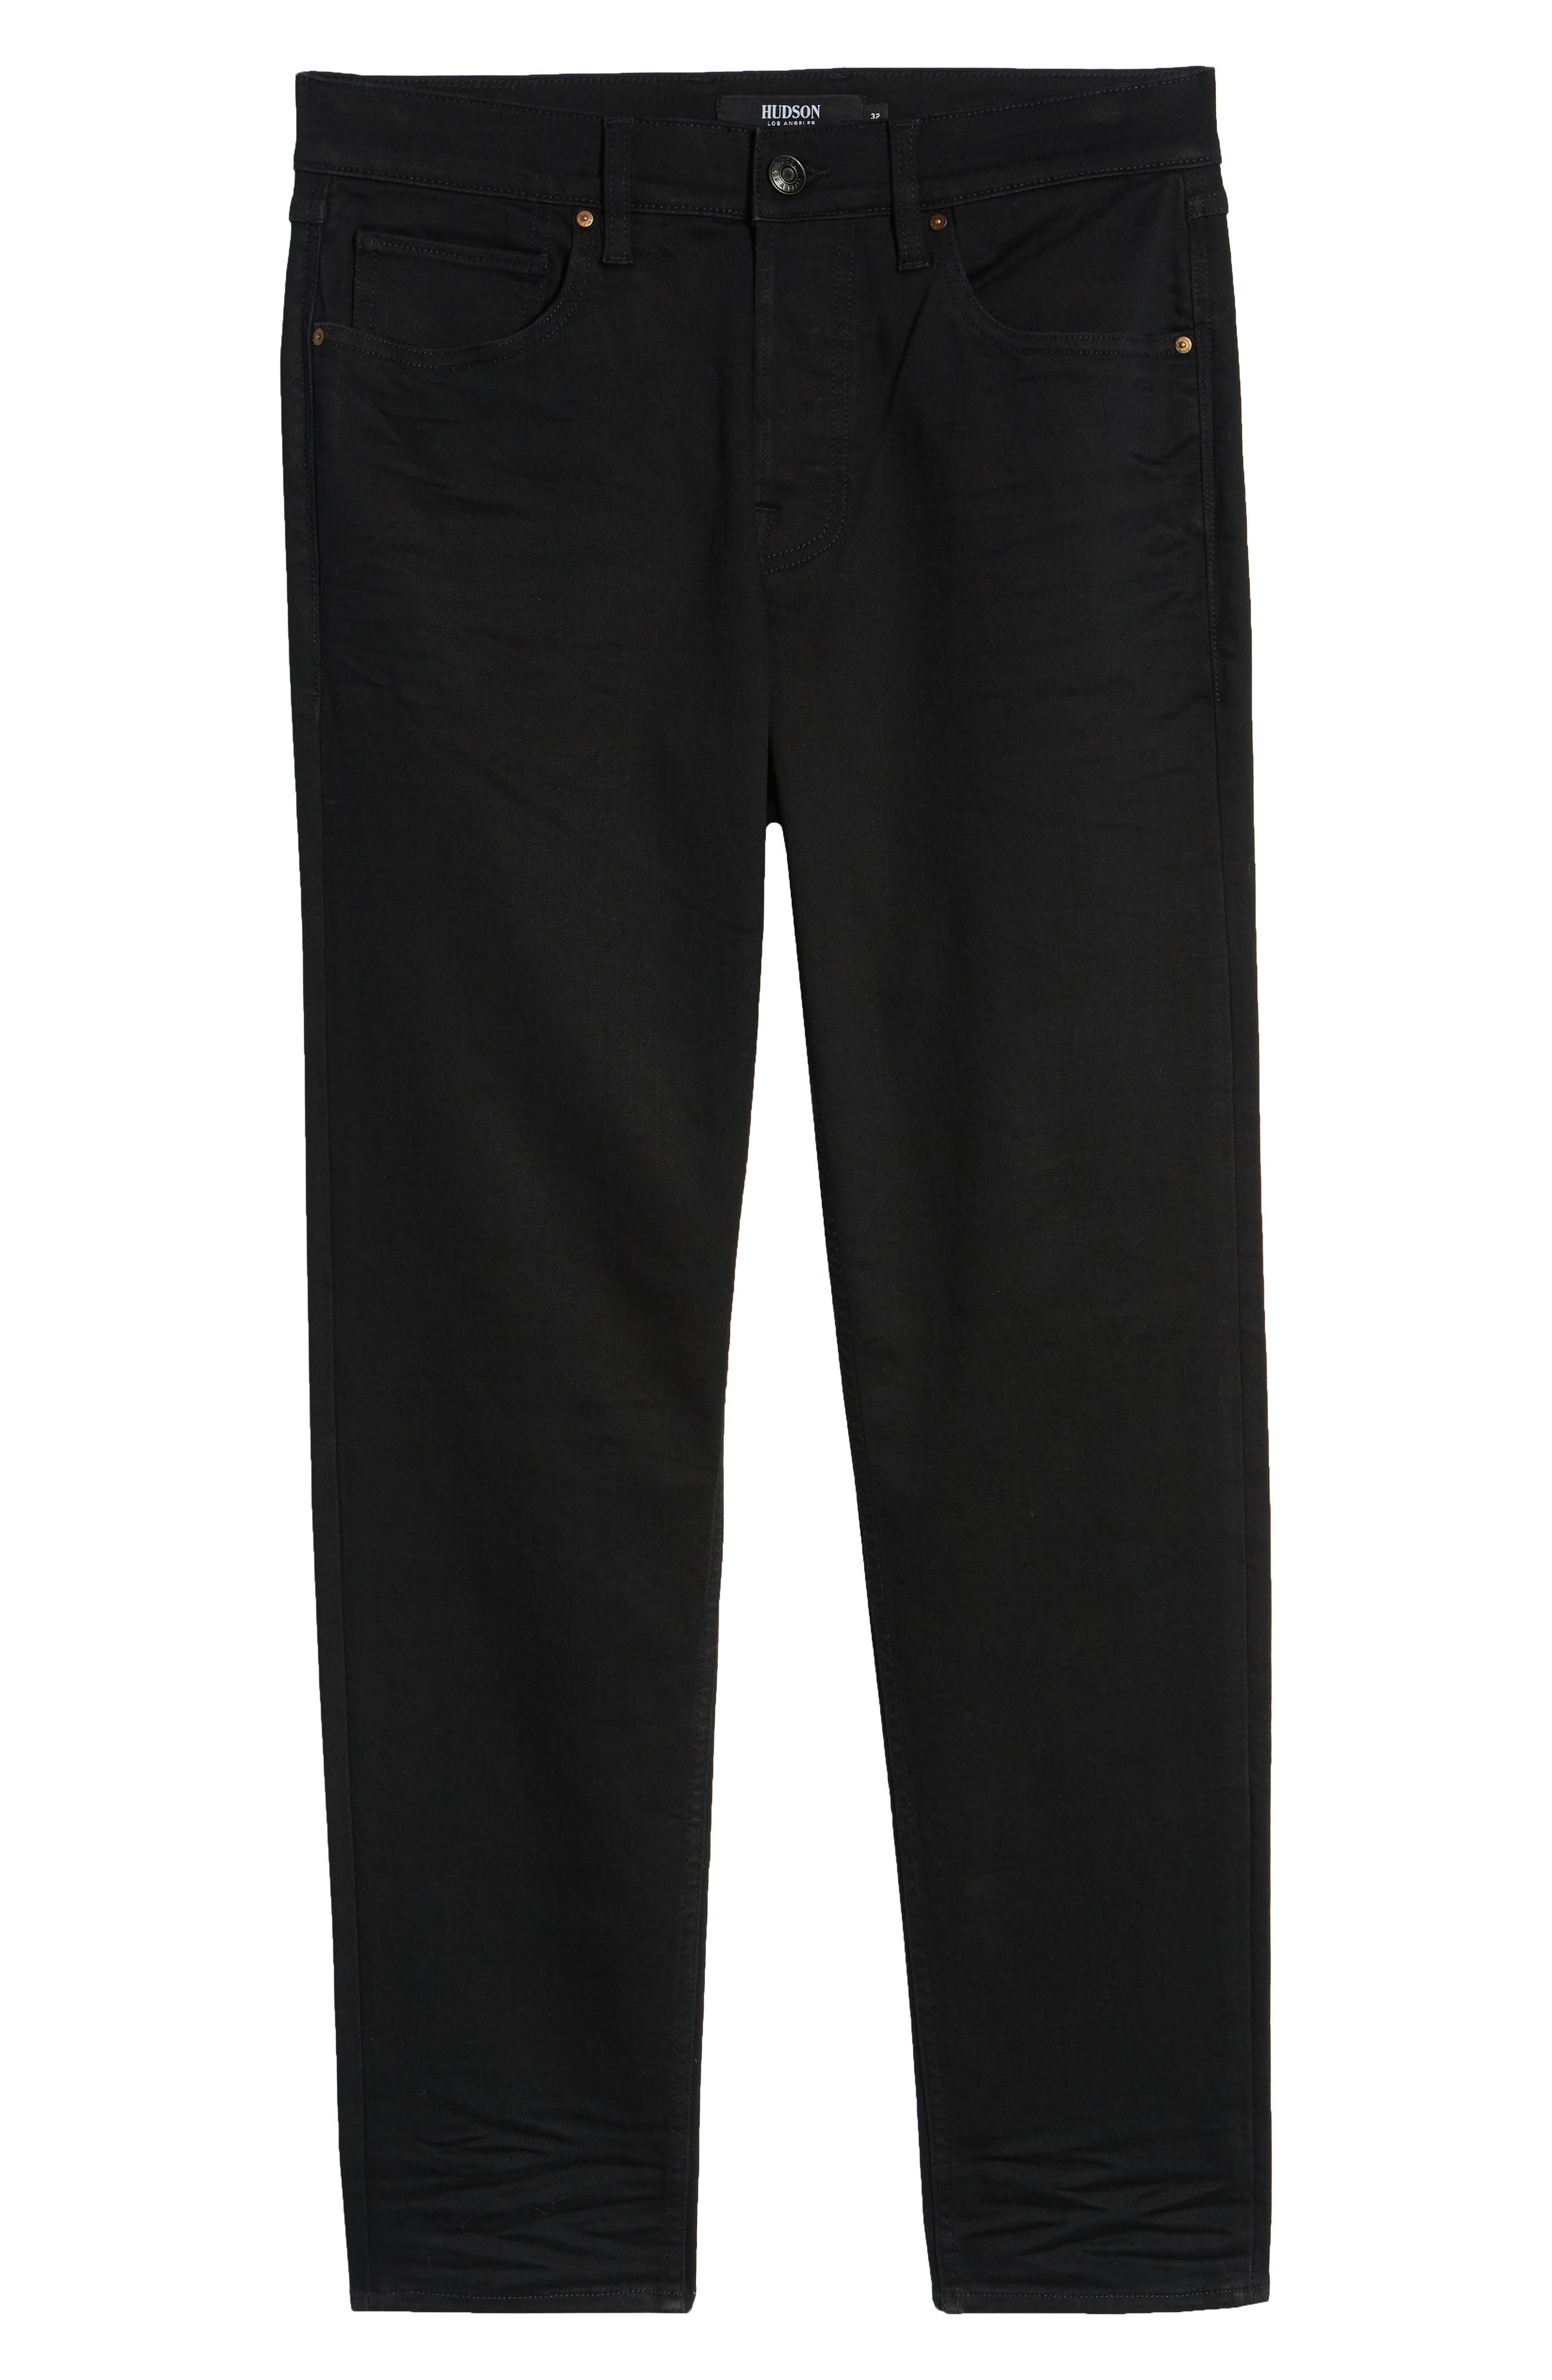 Sartor Slouchy Skinny Fit Jeans,                             Alternate thumbnail 6, color,                             001